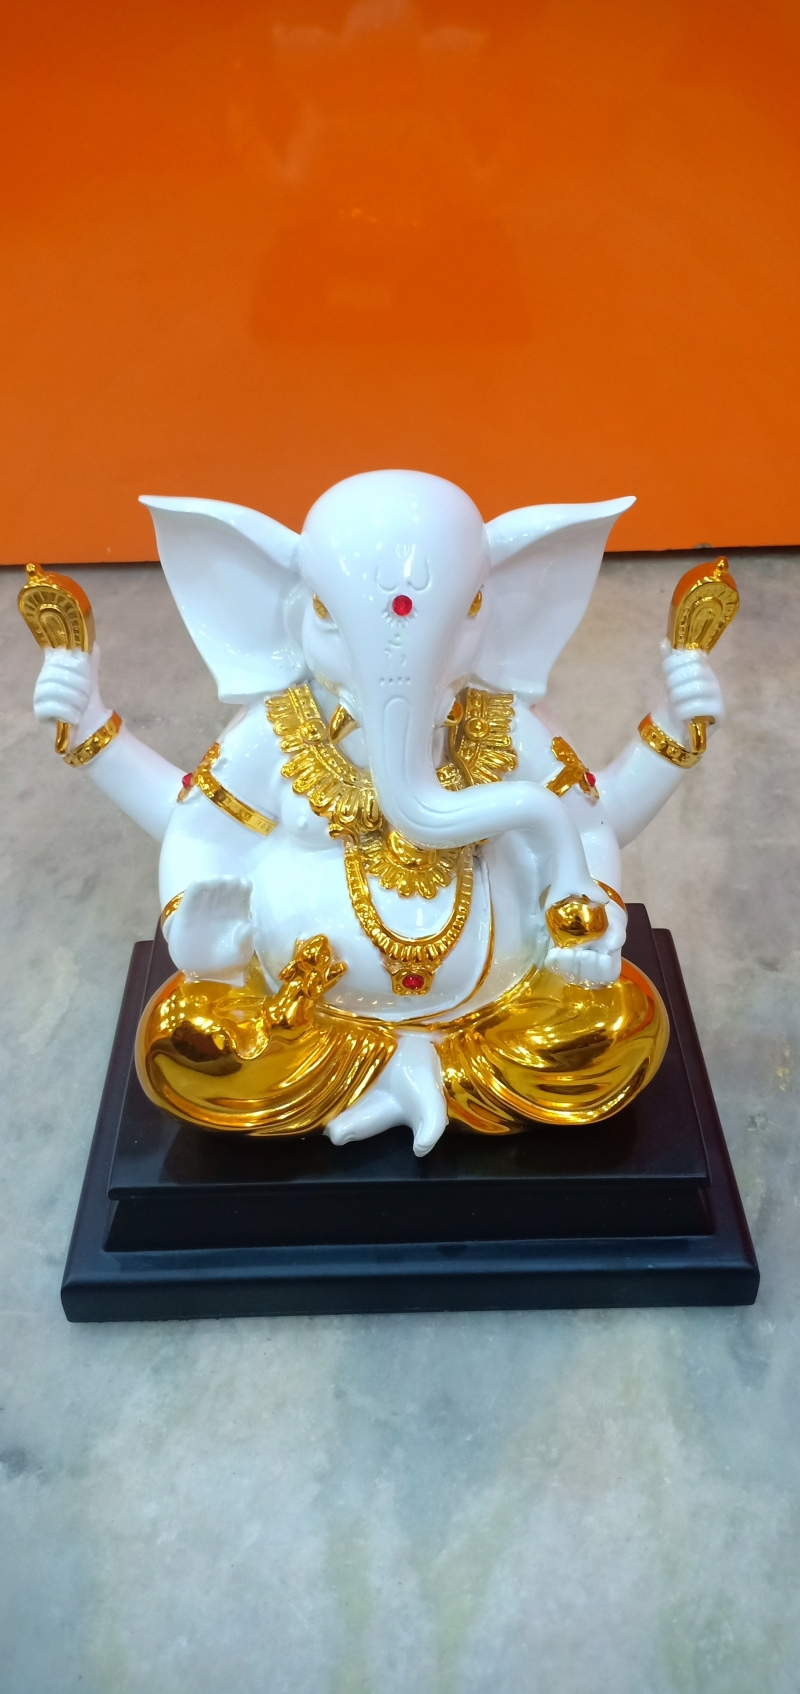 Buy Genuine Golden And White Ganesha Idols Polyresin Bring